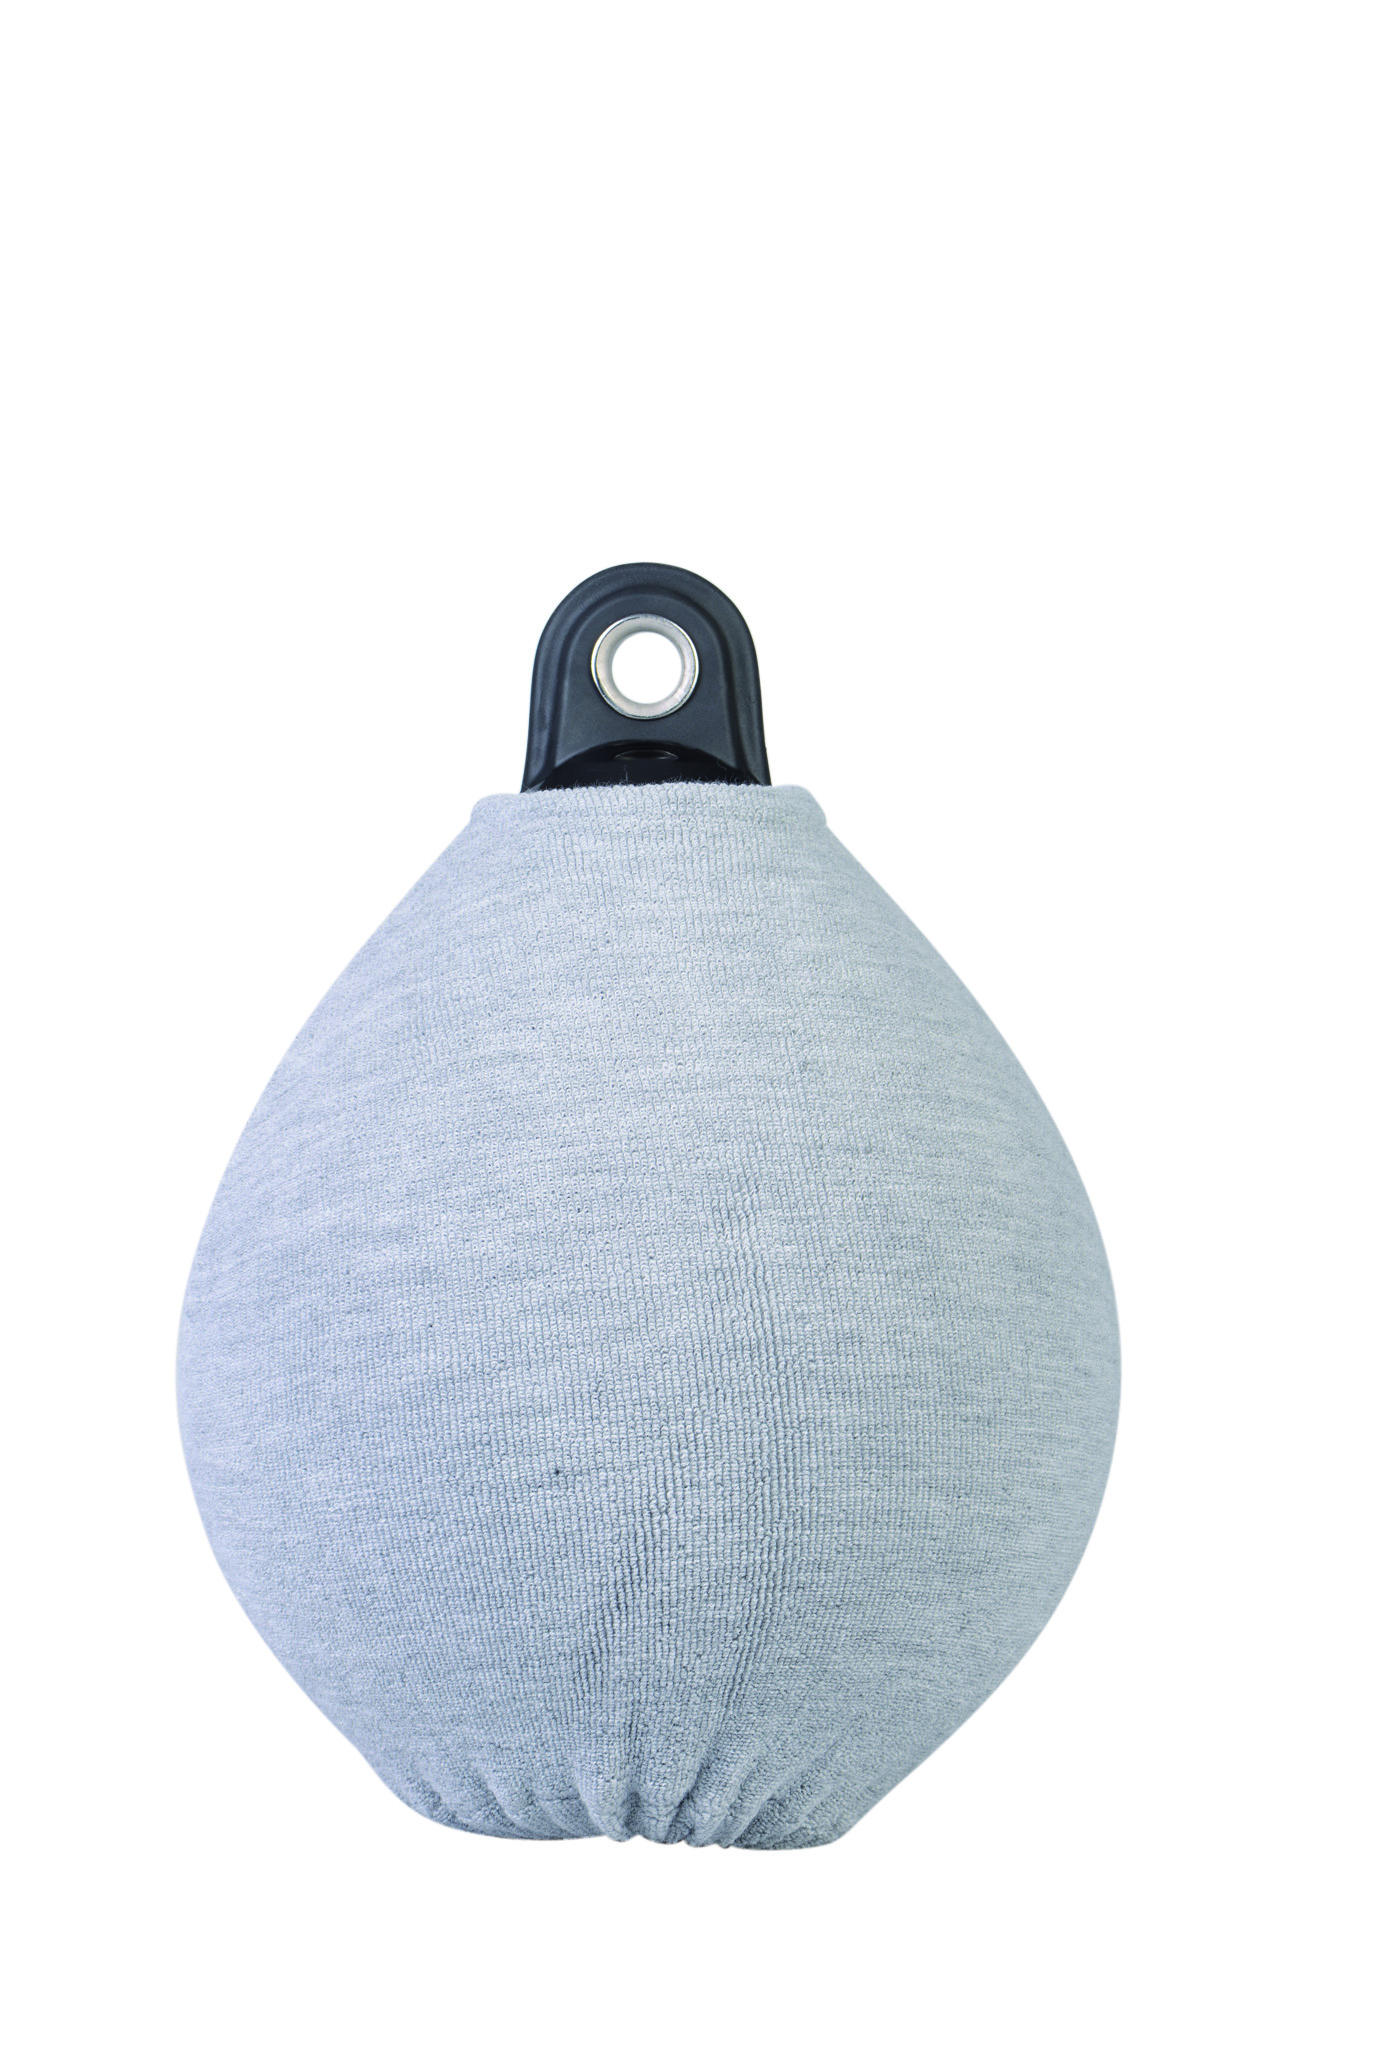 Talamex Buoy Cover 65 Grey